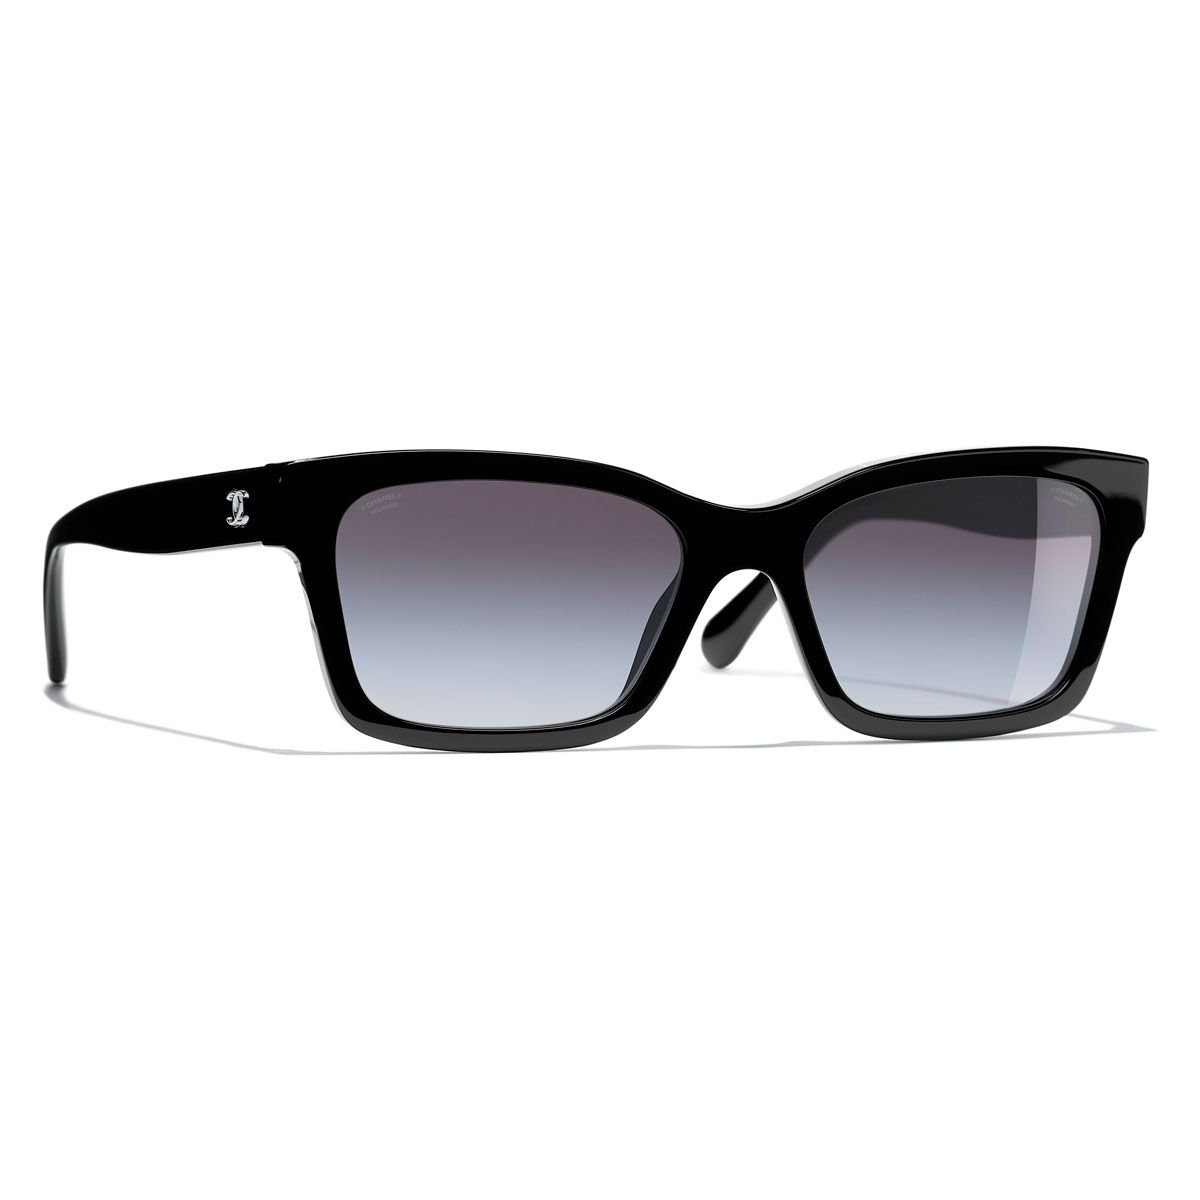 Square Sunglasses 285 Sunglasses